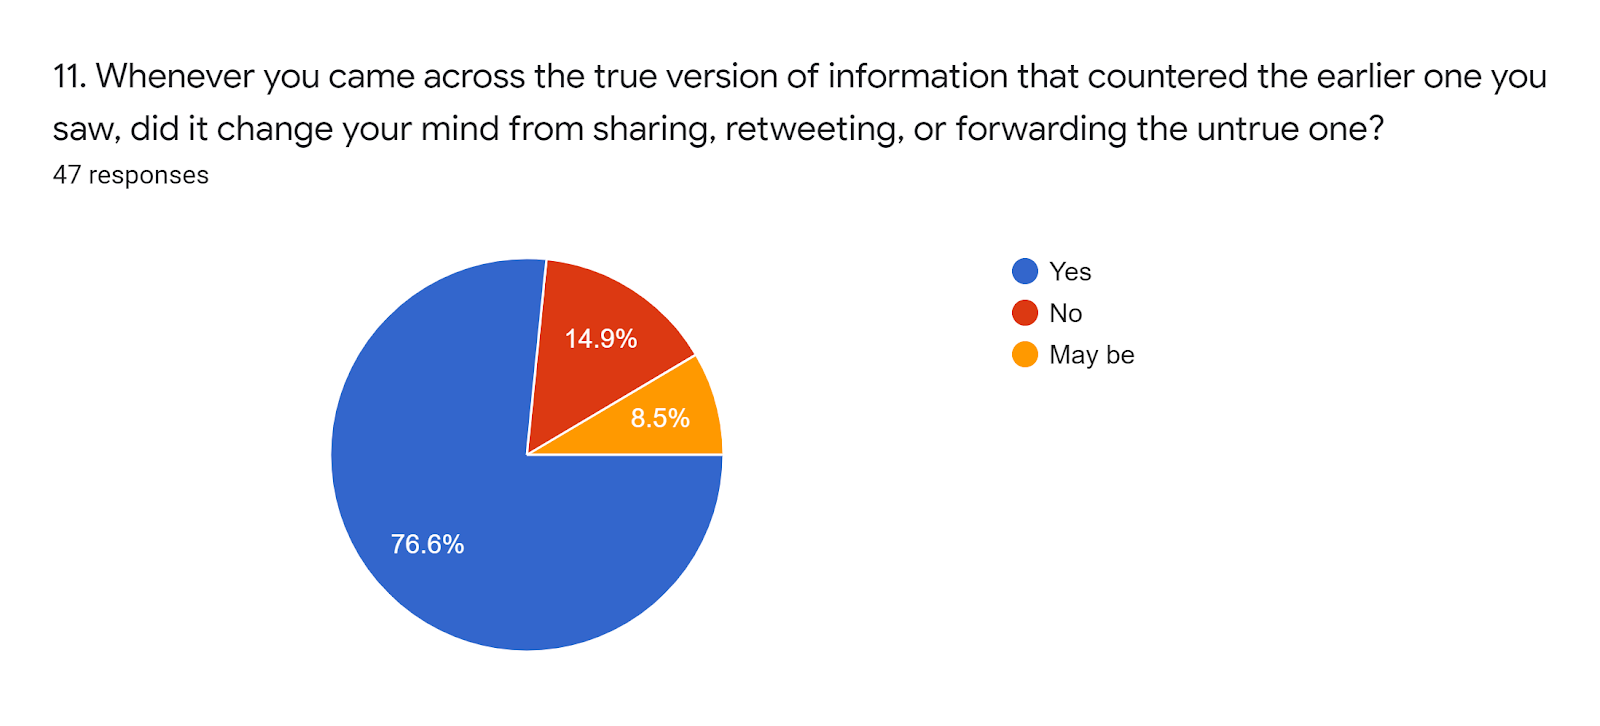 Forms response chart. Question title: 11. Whenever you came across the true version of information that countered the earlier one you saw, did it change your mind from sharing, retweeting, or forwarding the untrue one?. Number of responses: 47 responses.